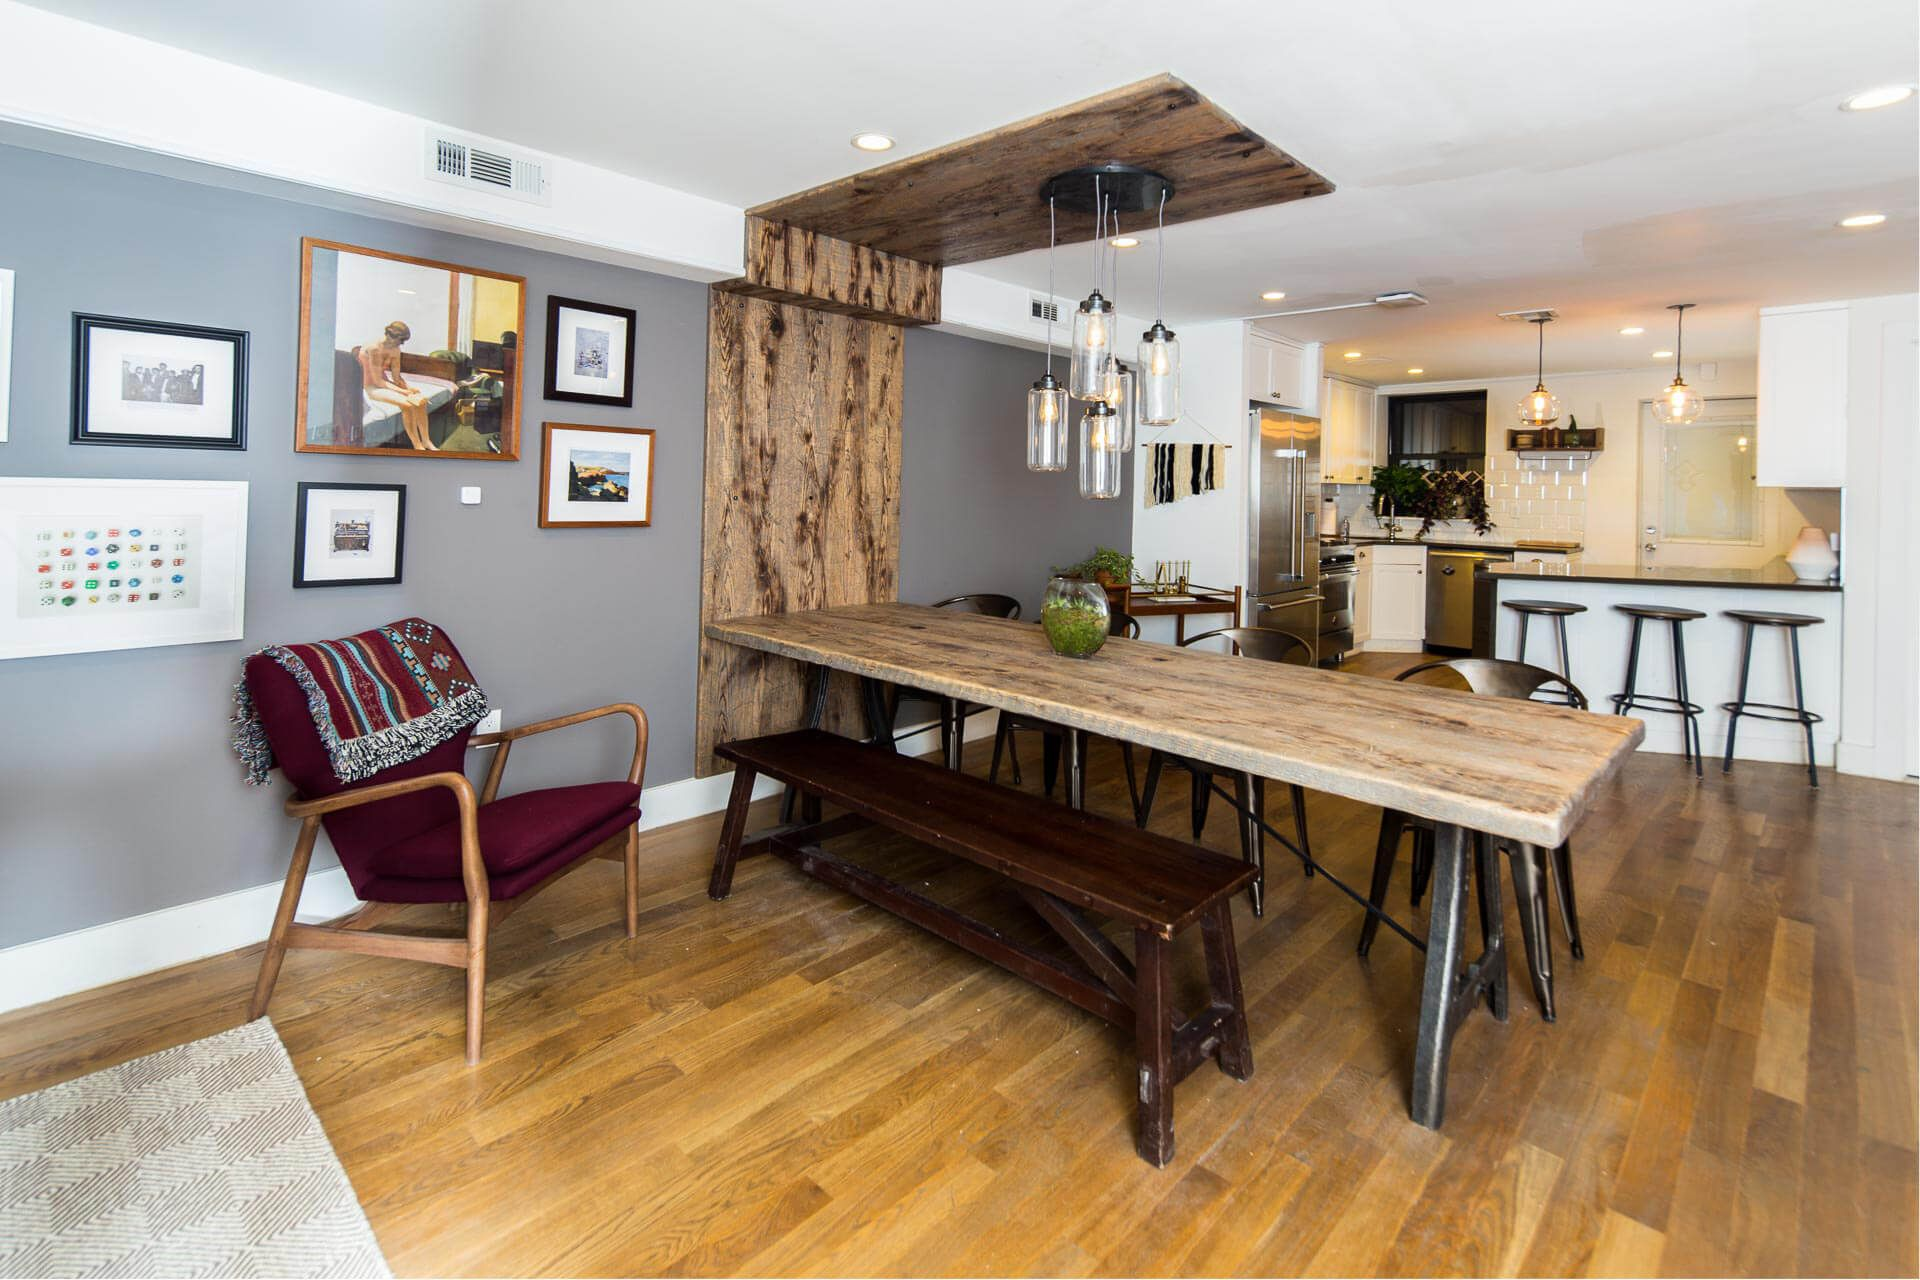 The shared dining and kitchen area at Common Albany in Crown Heights ...